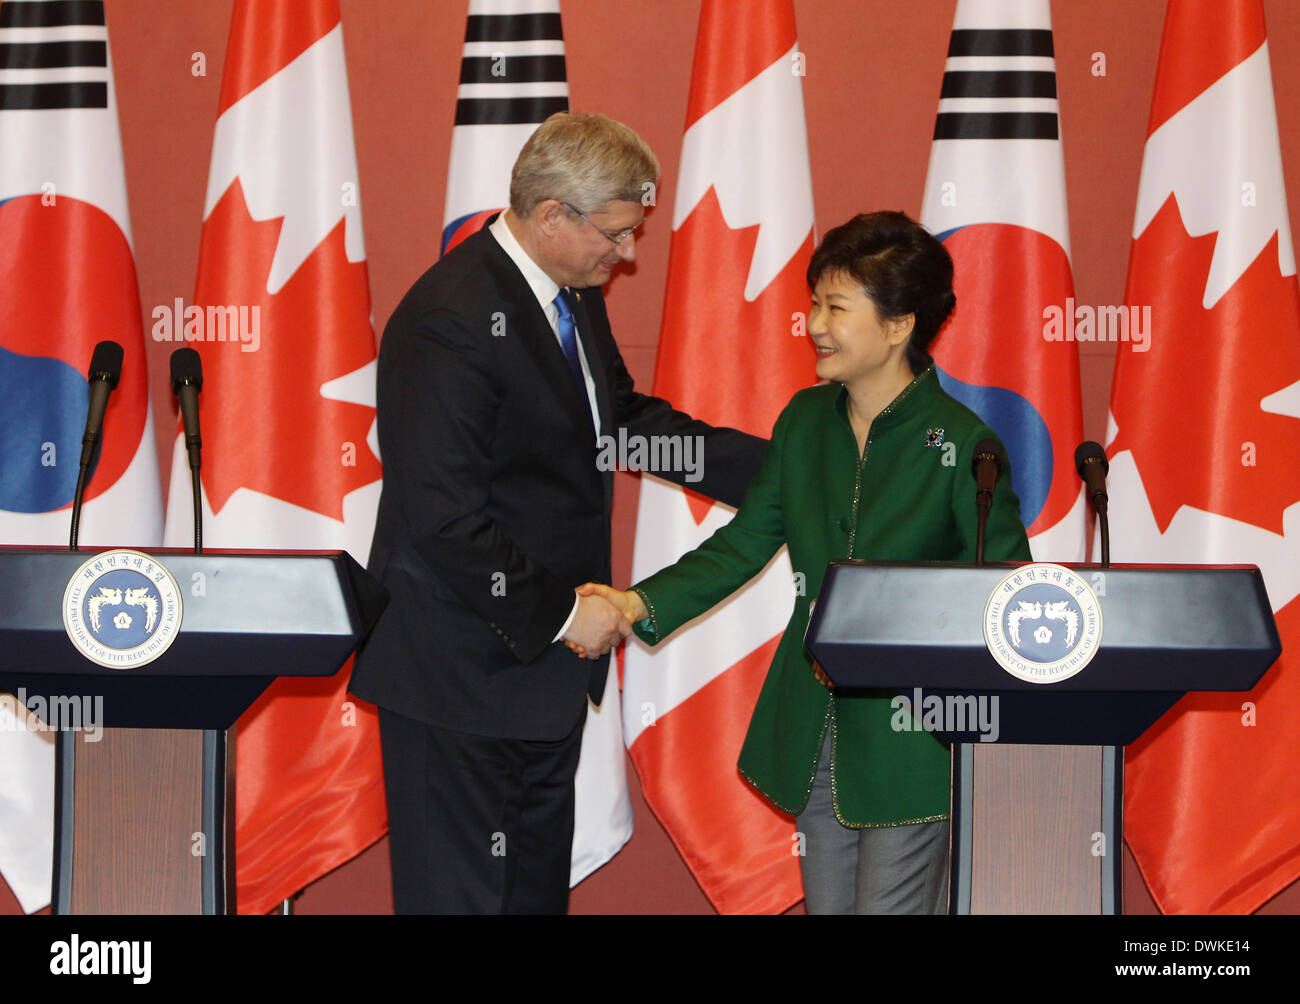 Seoul, South Korea. 11th Mar, 2014. South Korean President Park Geun-Hye (R) shakes hands with Canadian Prime Minister Stephen Harper during their joint press conference at the presidential Blue House in Seoul, South Korea, March 11, 2014. South Korea and Canada finalized years of negotiations on their free trade agreement (FTA) on Tuesday after talks between Park Geun-hye and Stephen Harper. © Park Jin-hee/Xinhua/Alamy Live News - Stock Image